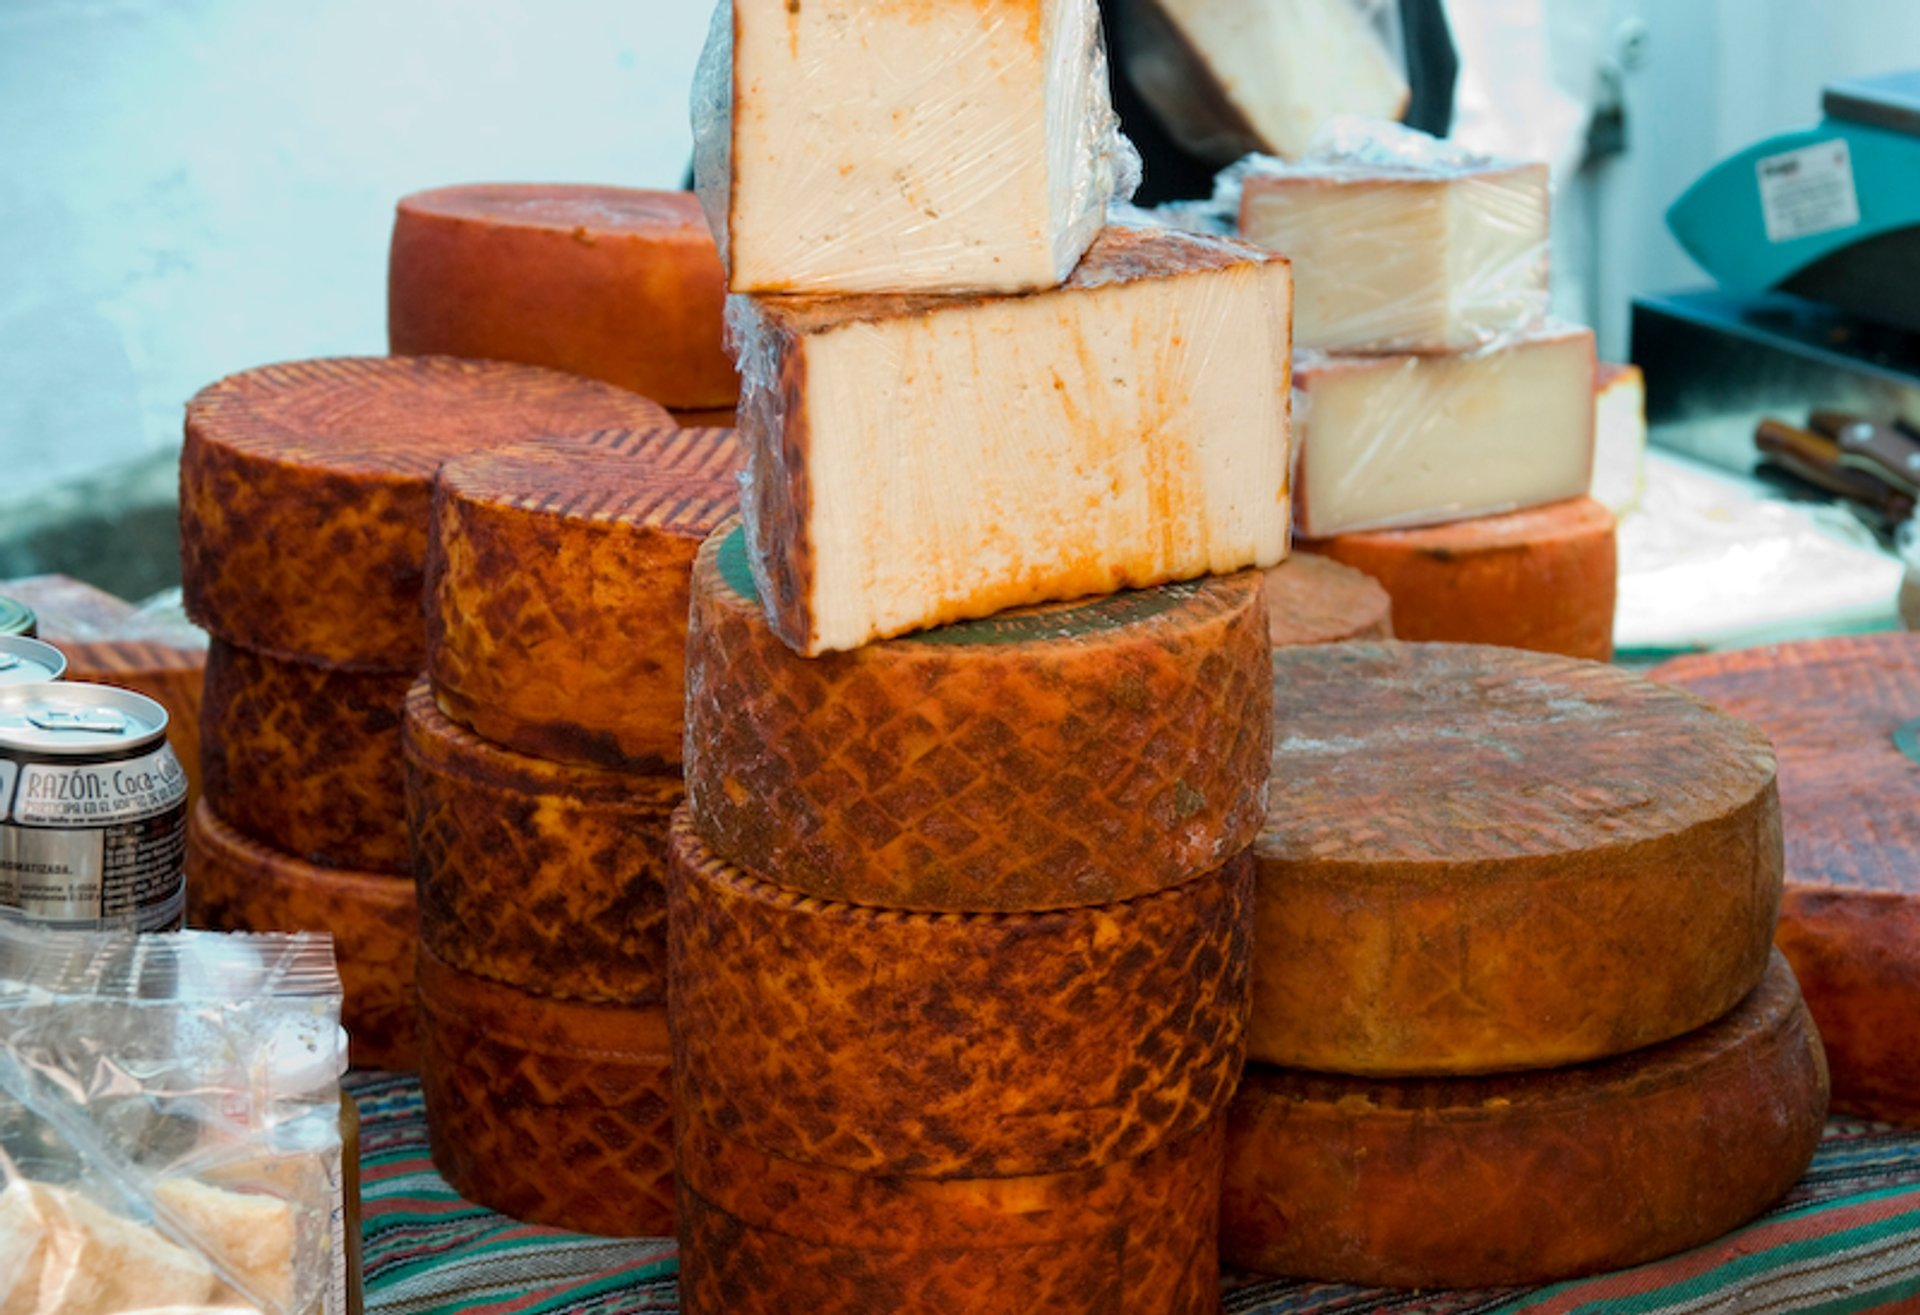 Best time for Cheese in Canary Islands